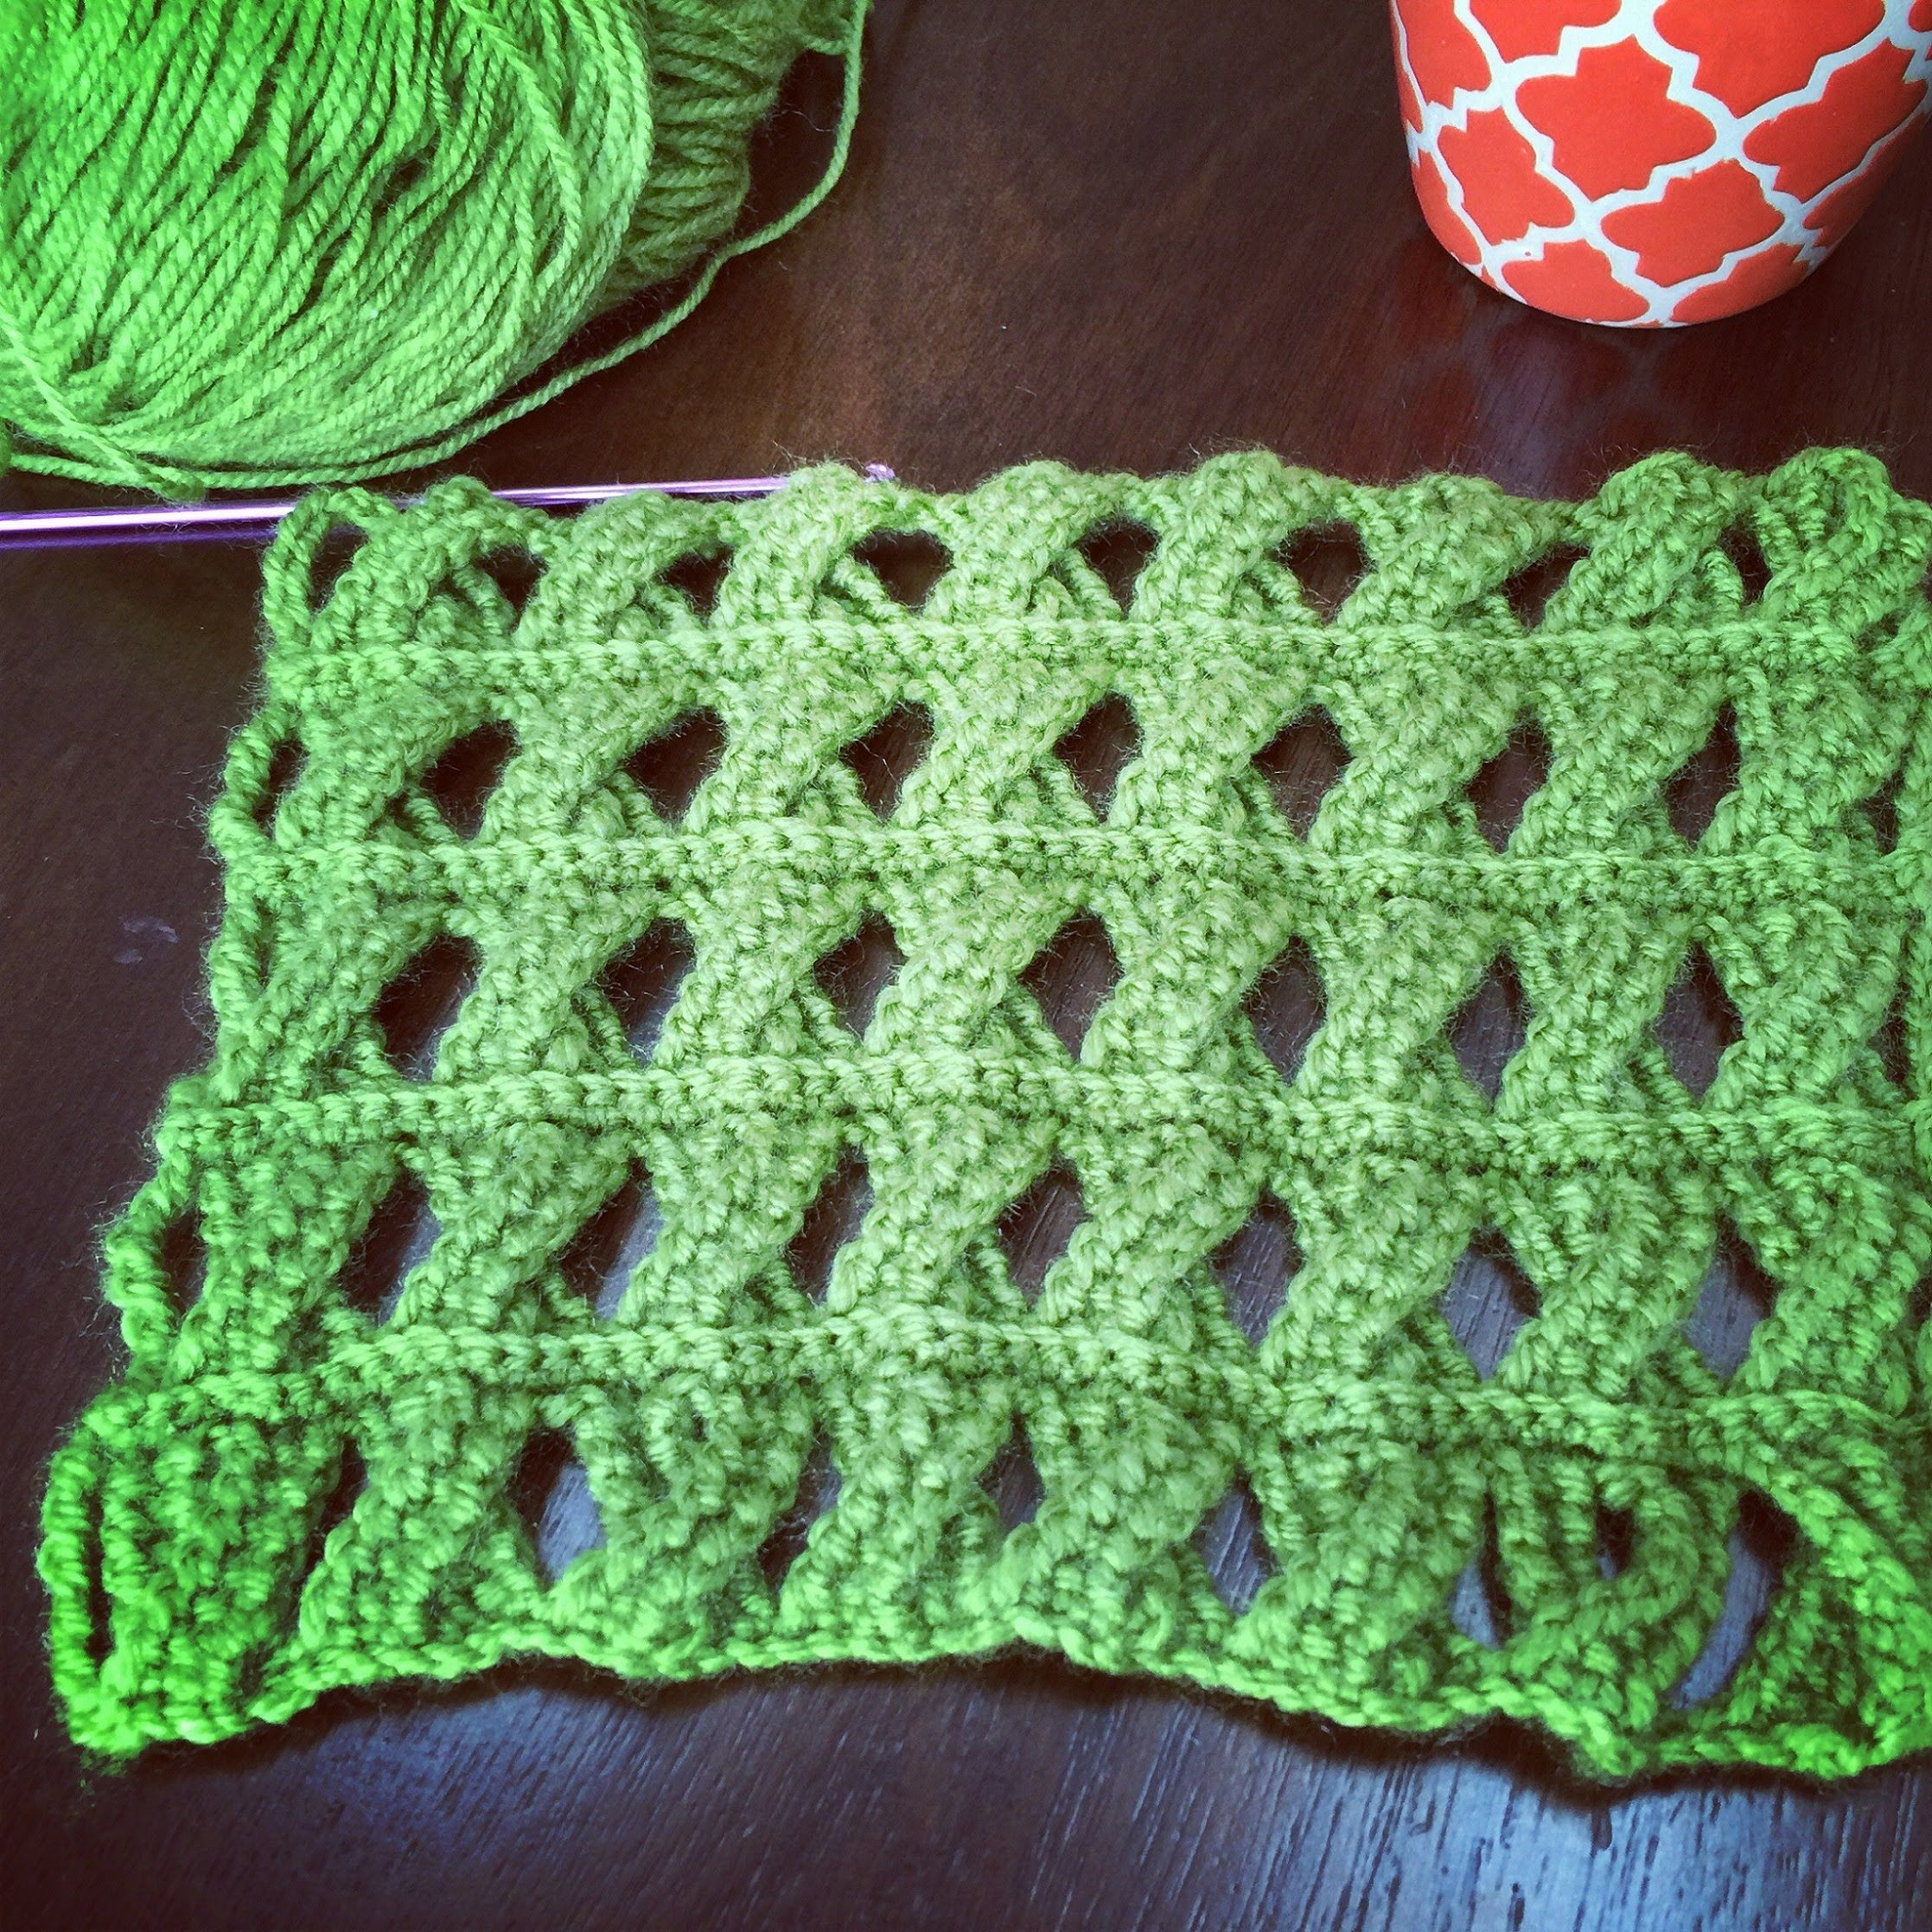 blanket stitch instructions for beginners